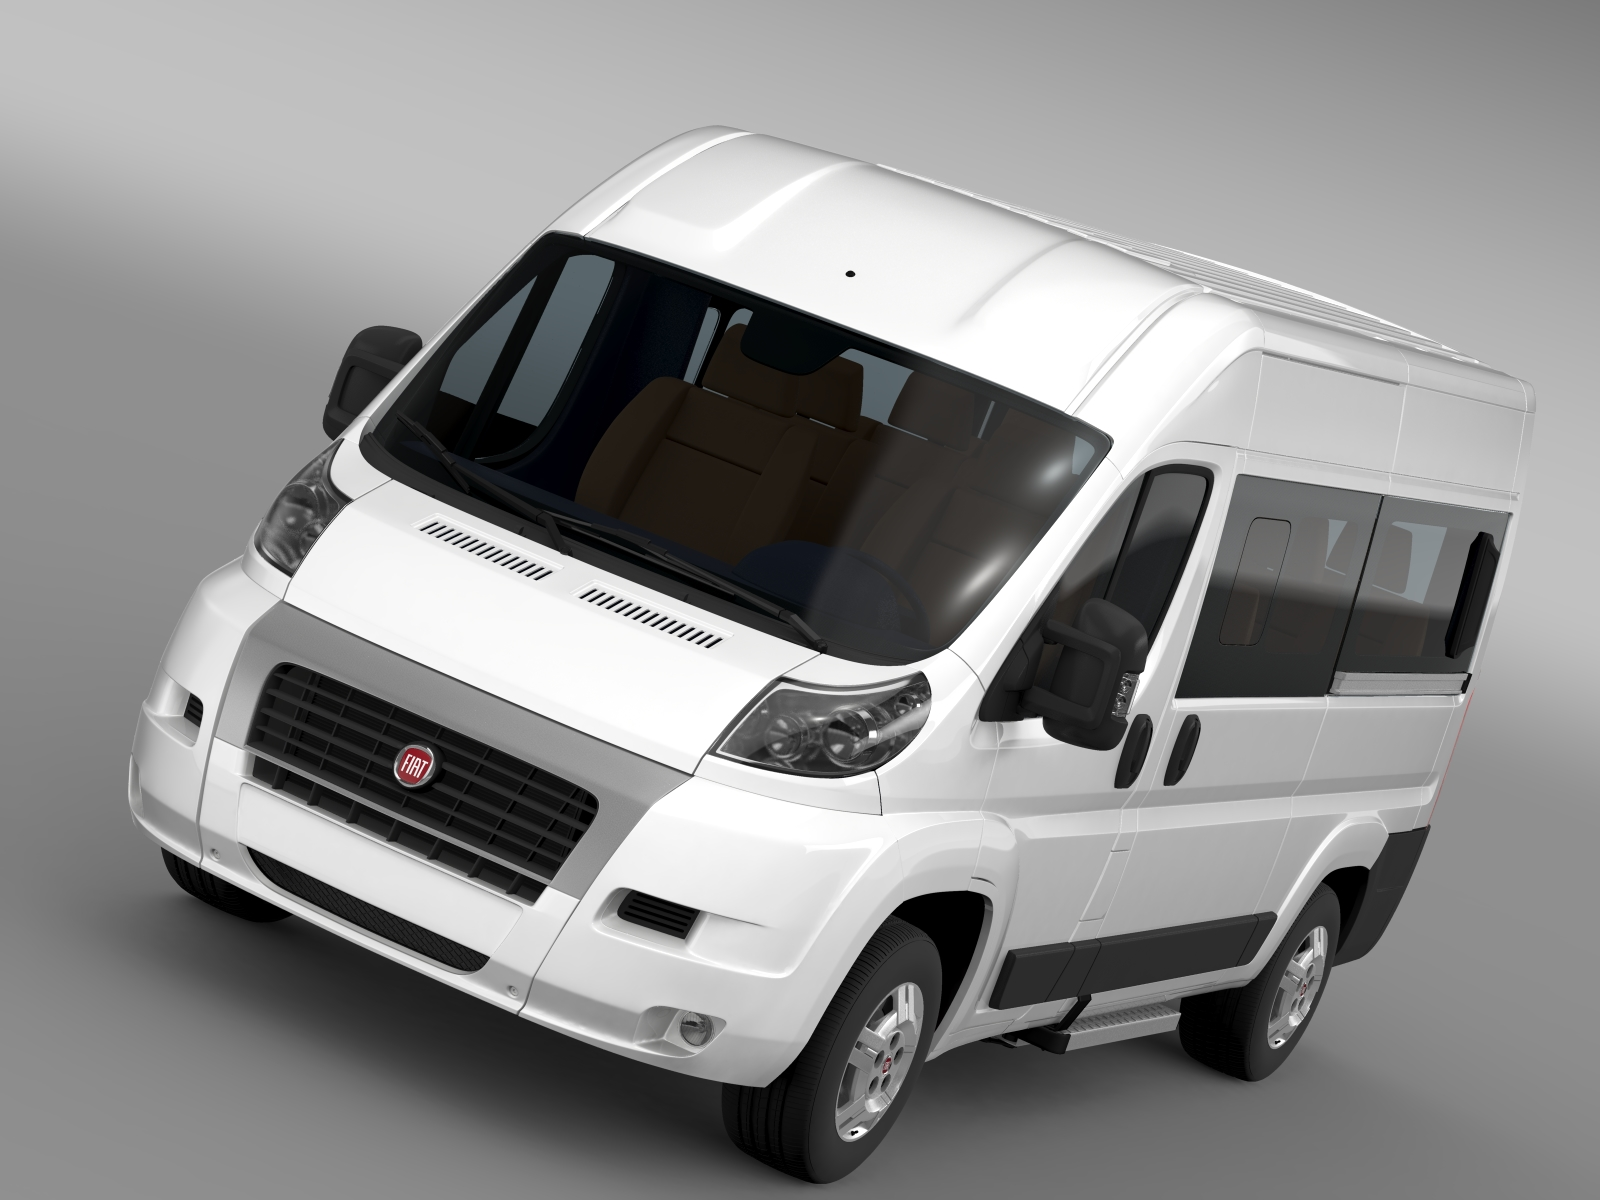 fiat ducato panorama l2h2 2006 2014 3d model buy fiat ducato panorama l2h2 2006 2014 3d model. Black Bedroom Furniture Sets. Home Design Ideas